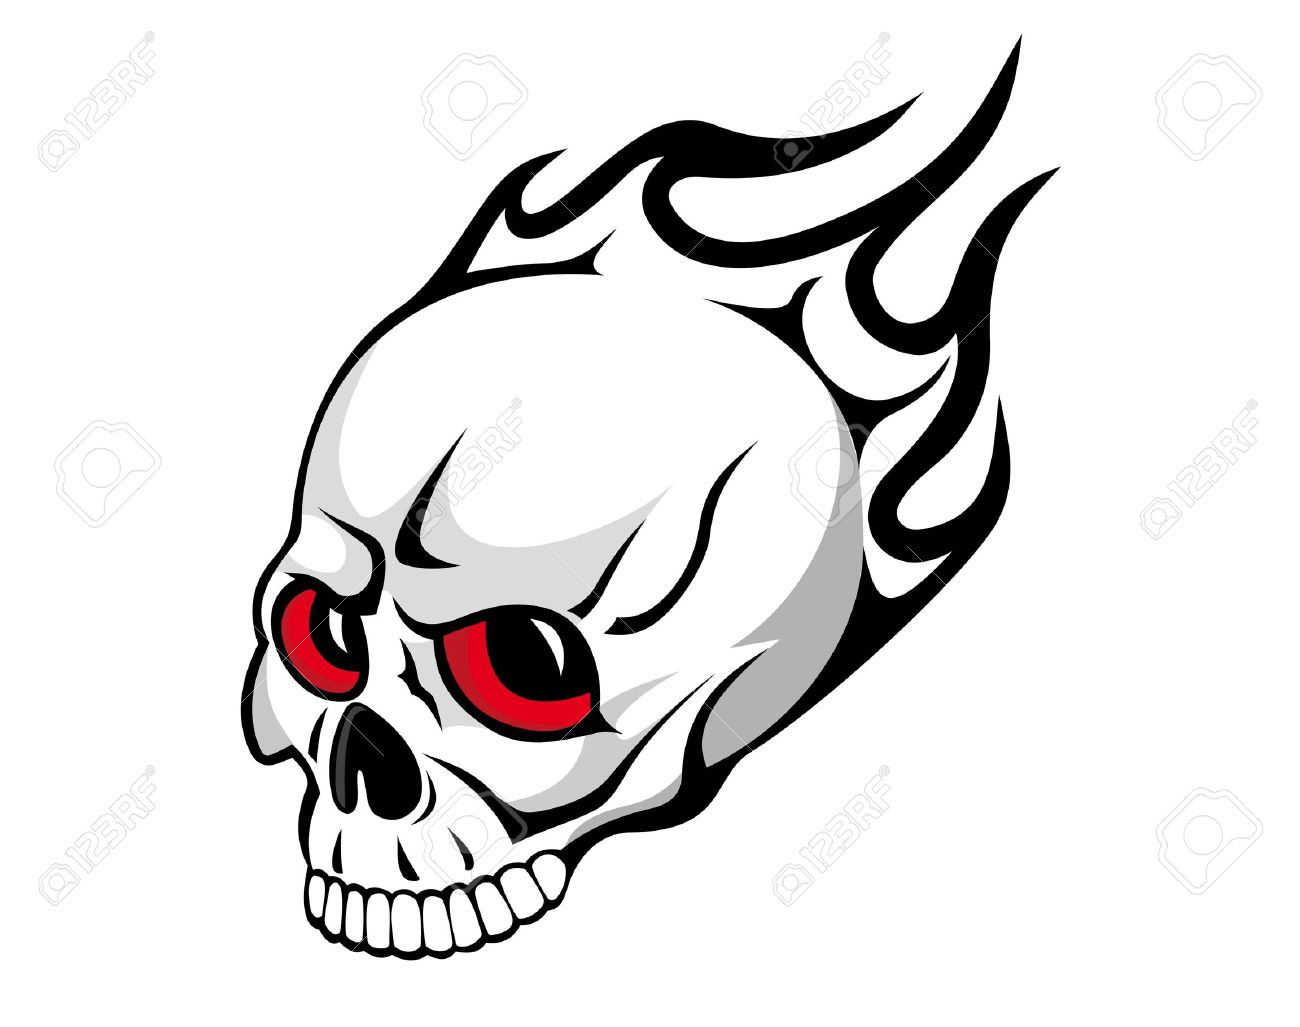 Danger evil skull with flames as a tattoo isolated on white Stock Vector - 10371908